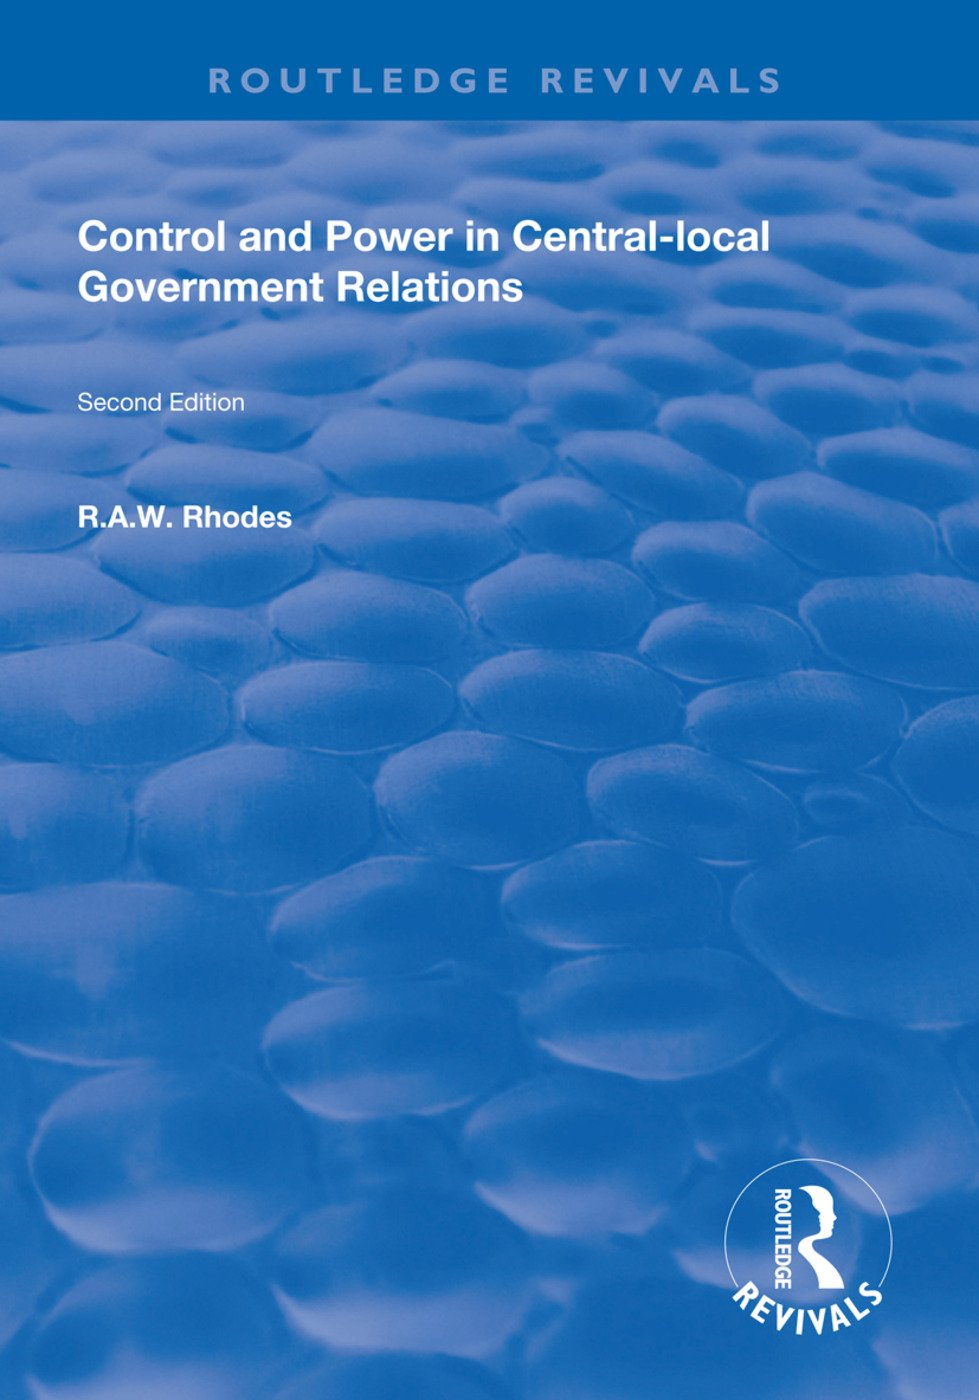 Control and Power in Central-local Government Relations